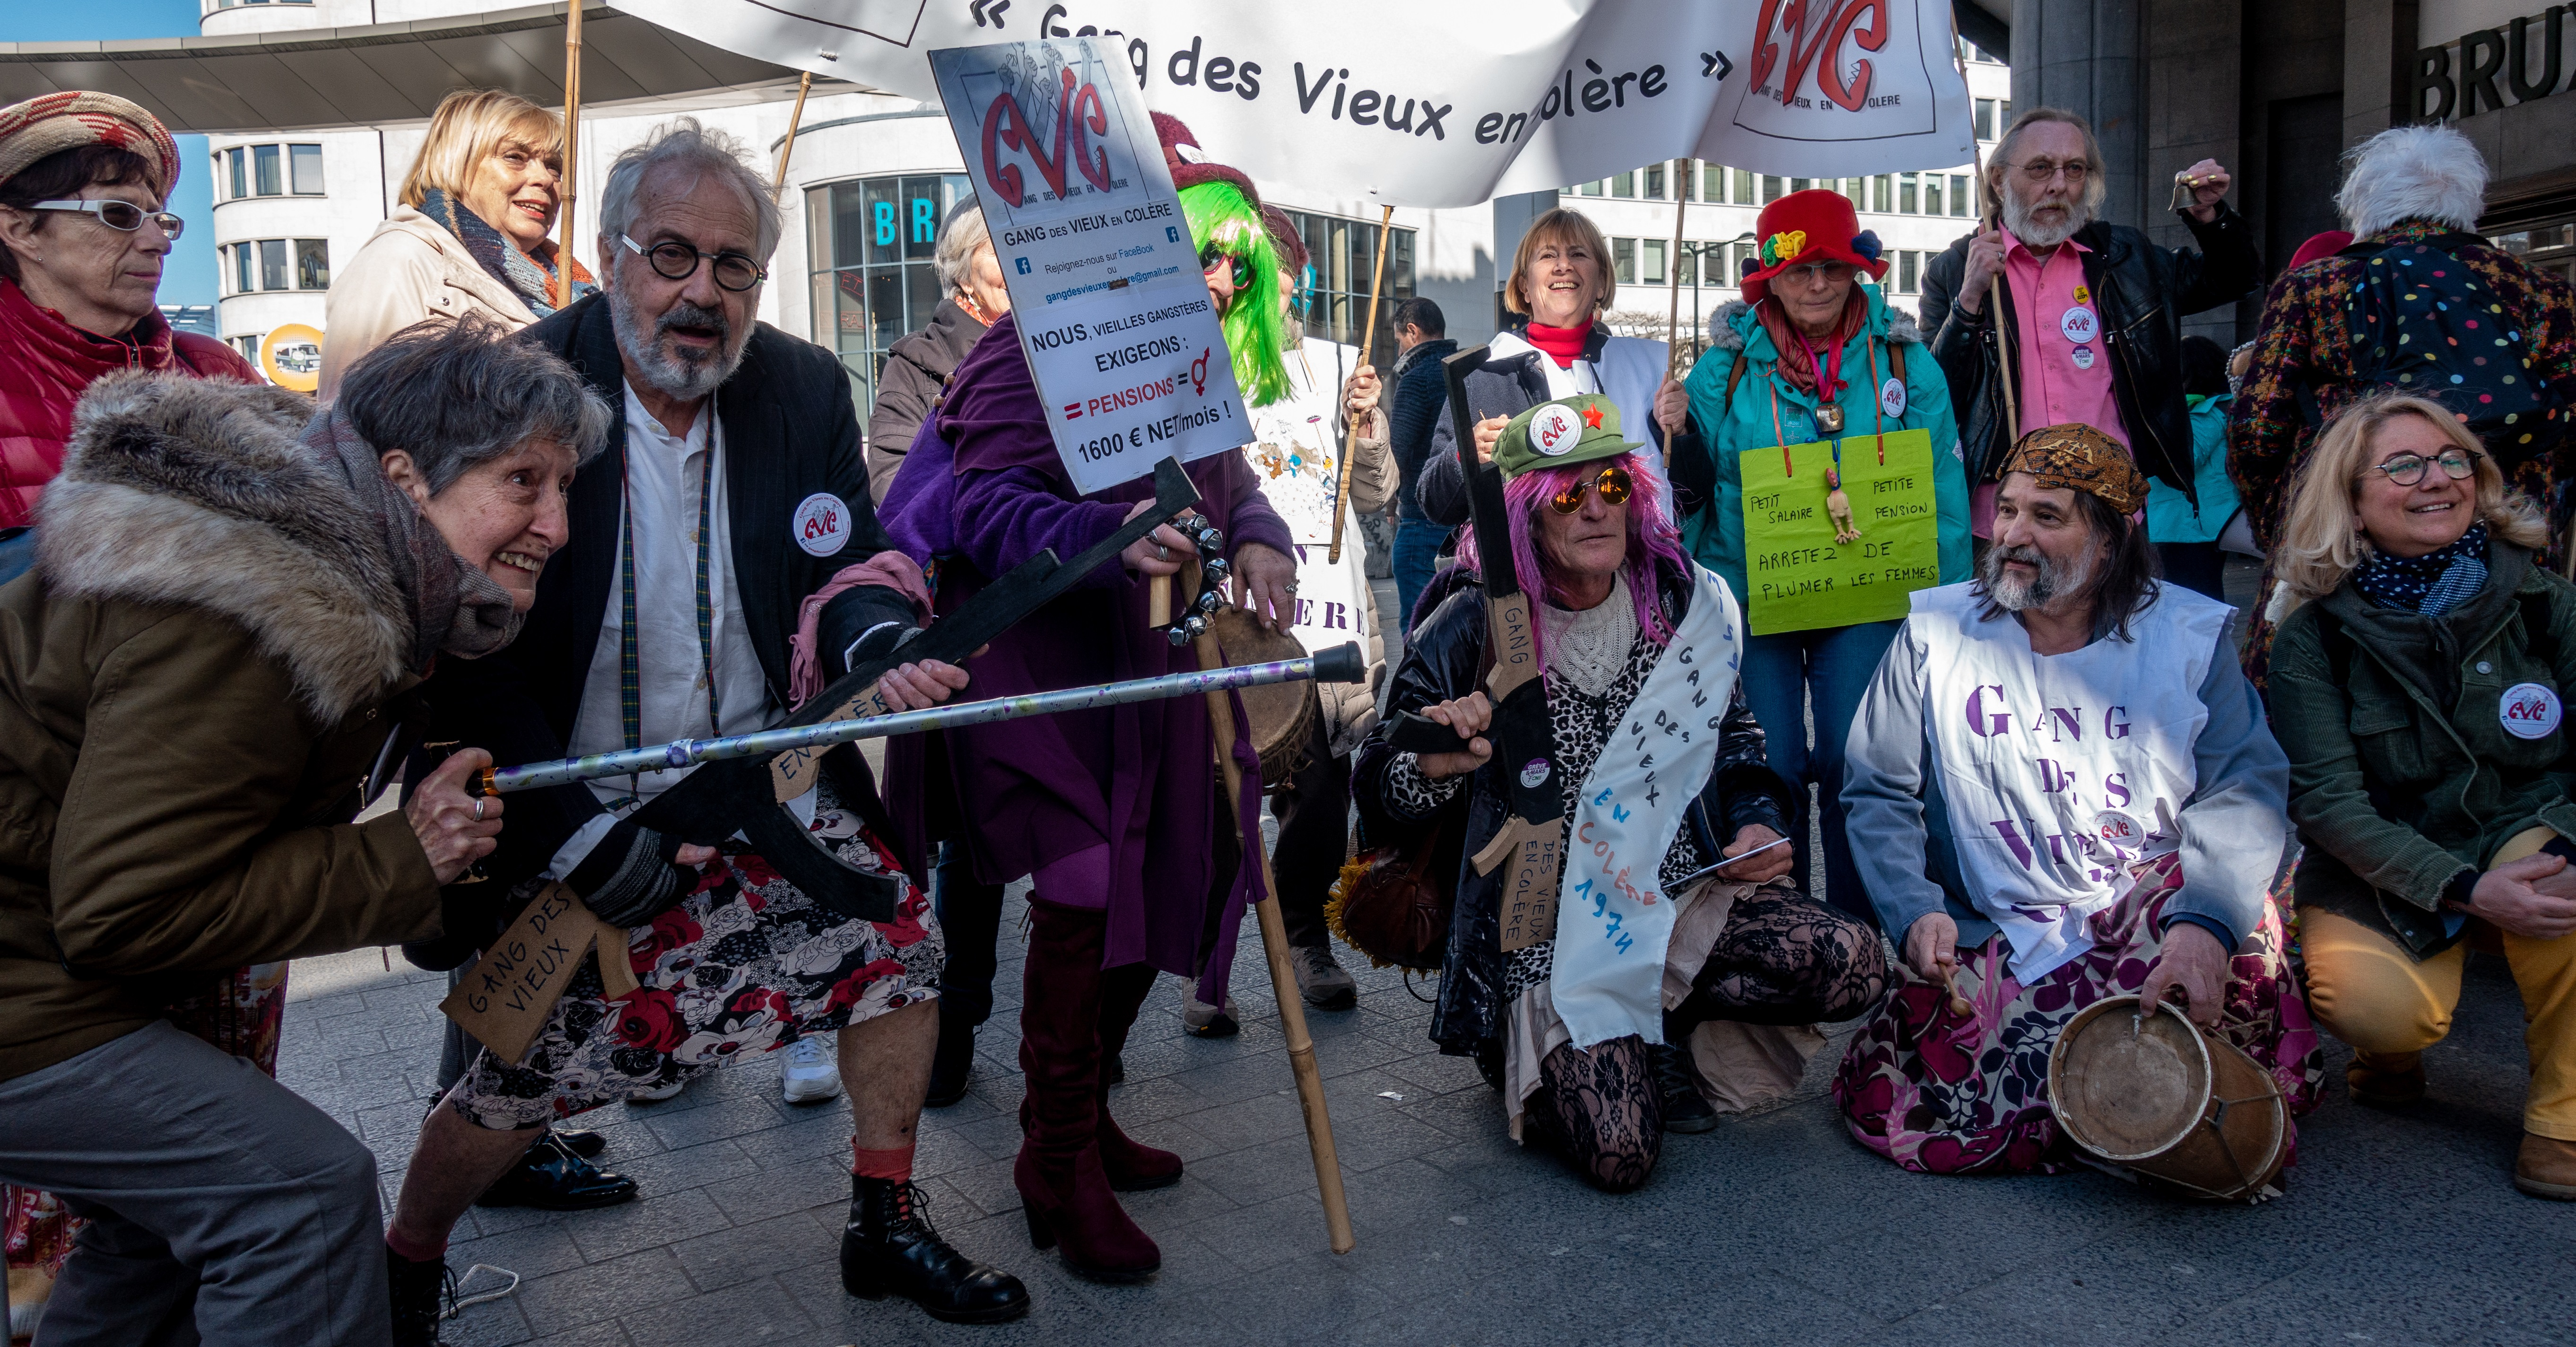 Gang des Vieux en Colère participating in the 8th March protest in Brussels